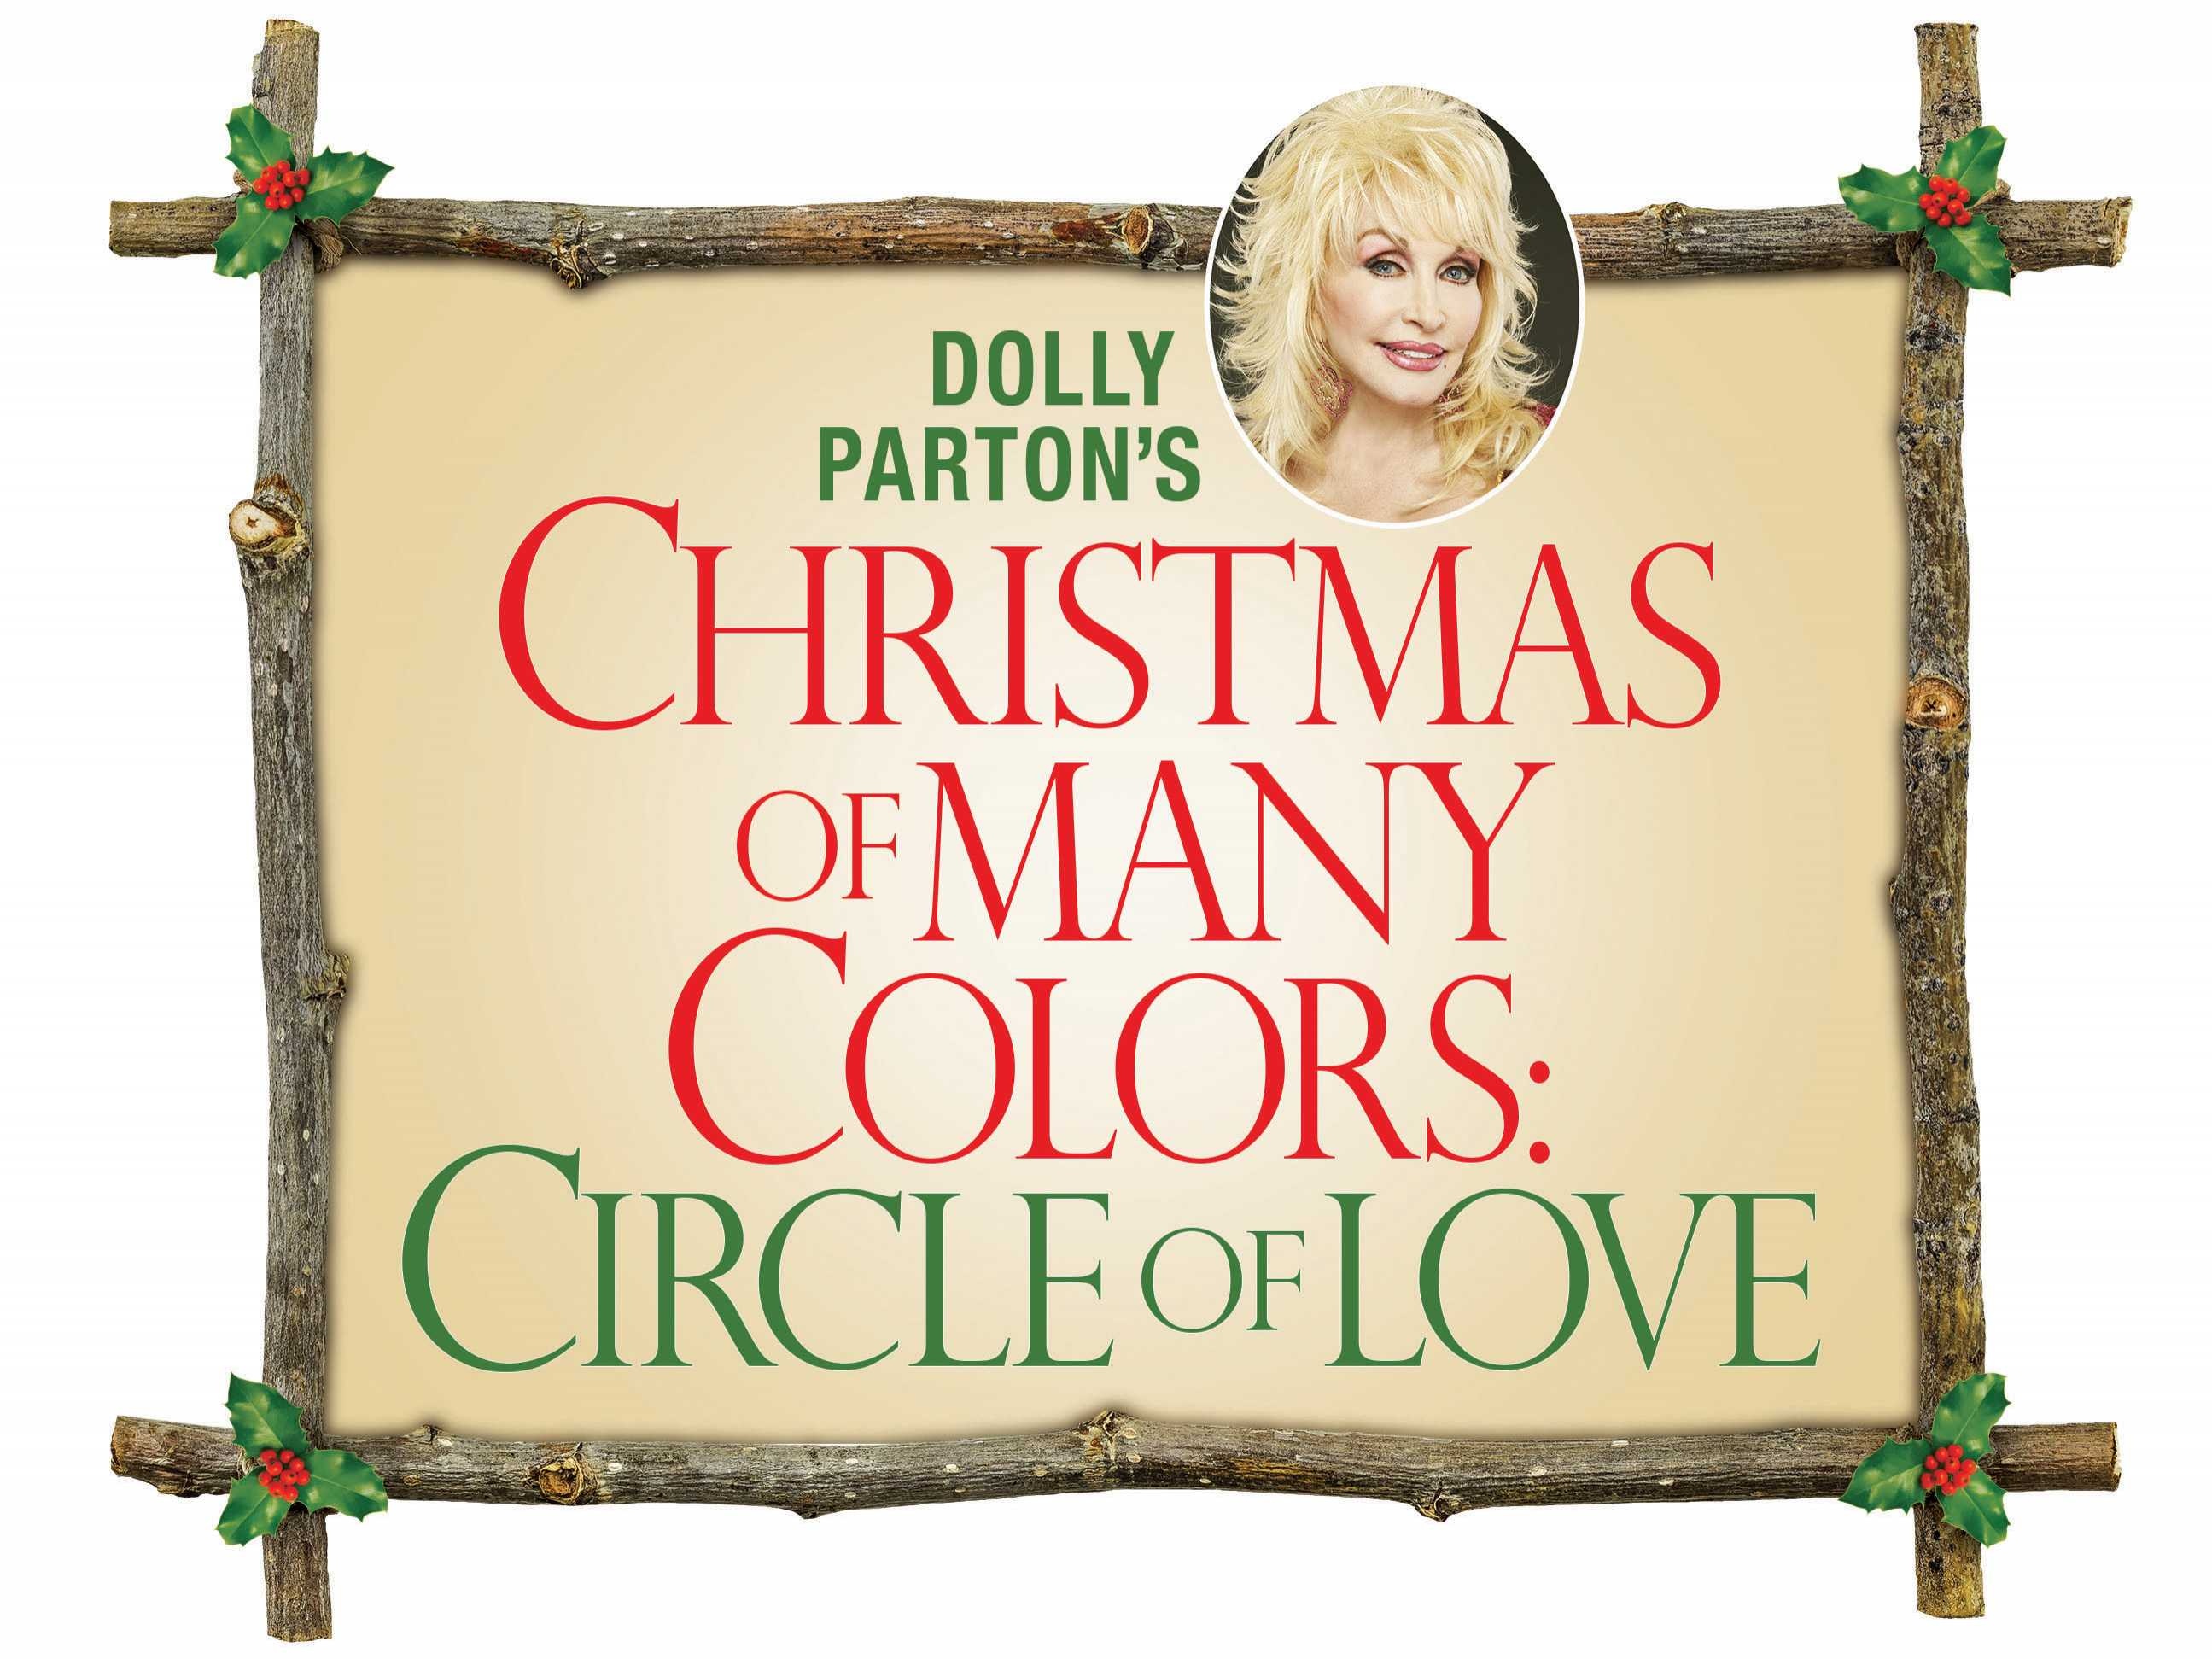 Dolly Parton's 'Christmas of Many Colors: Circle of Love' Wins Epiphany Prize